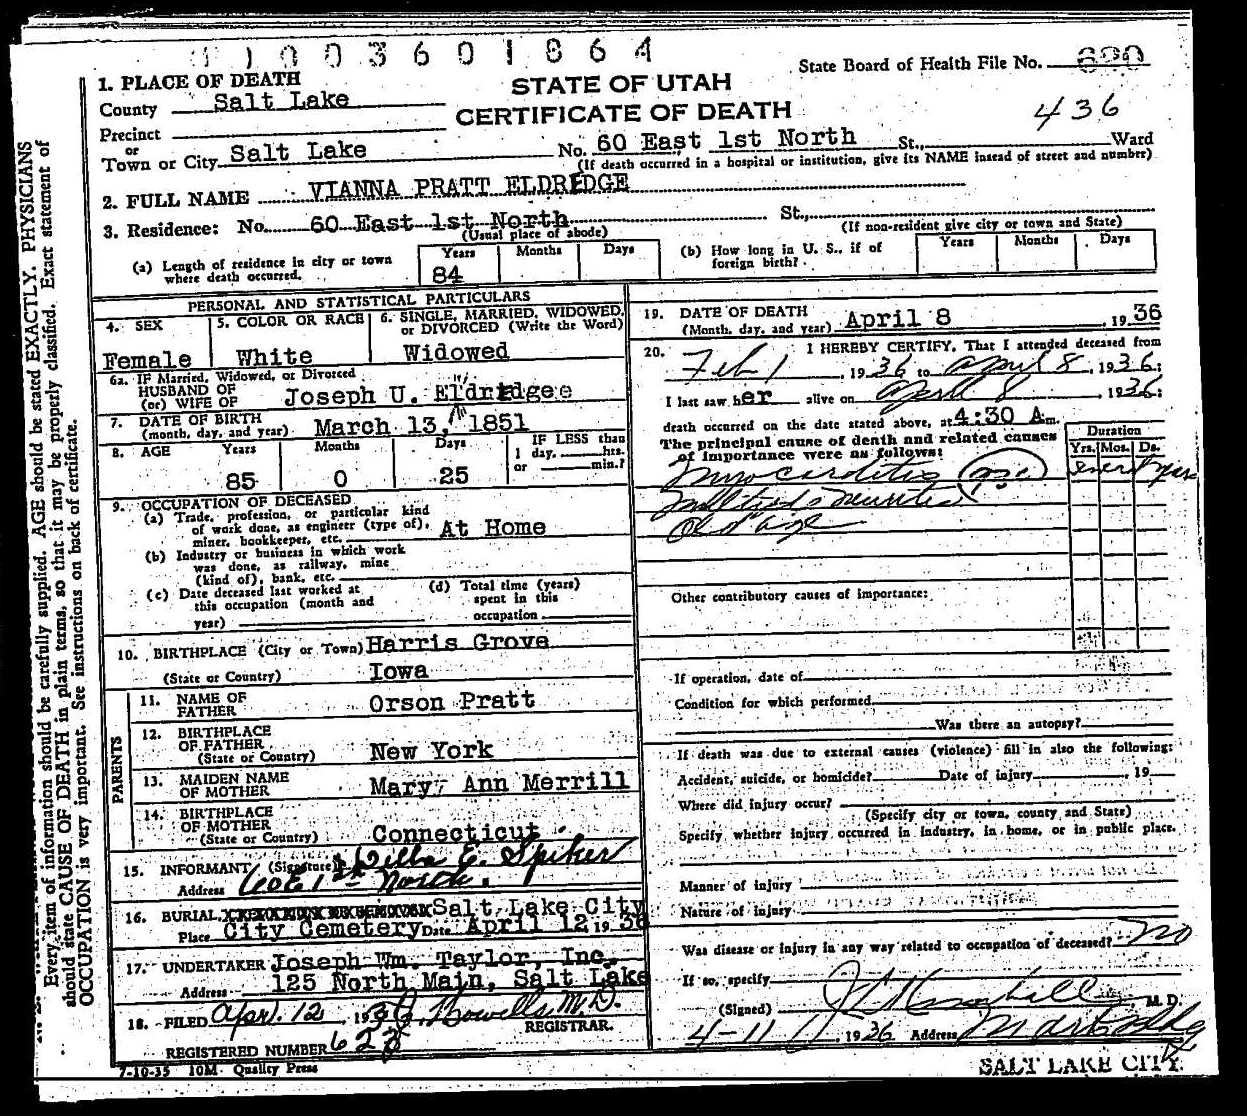 death certificate of vianna pratt eldredge